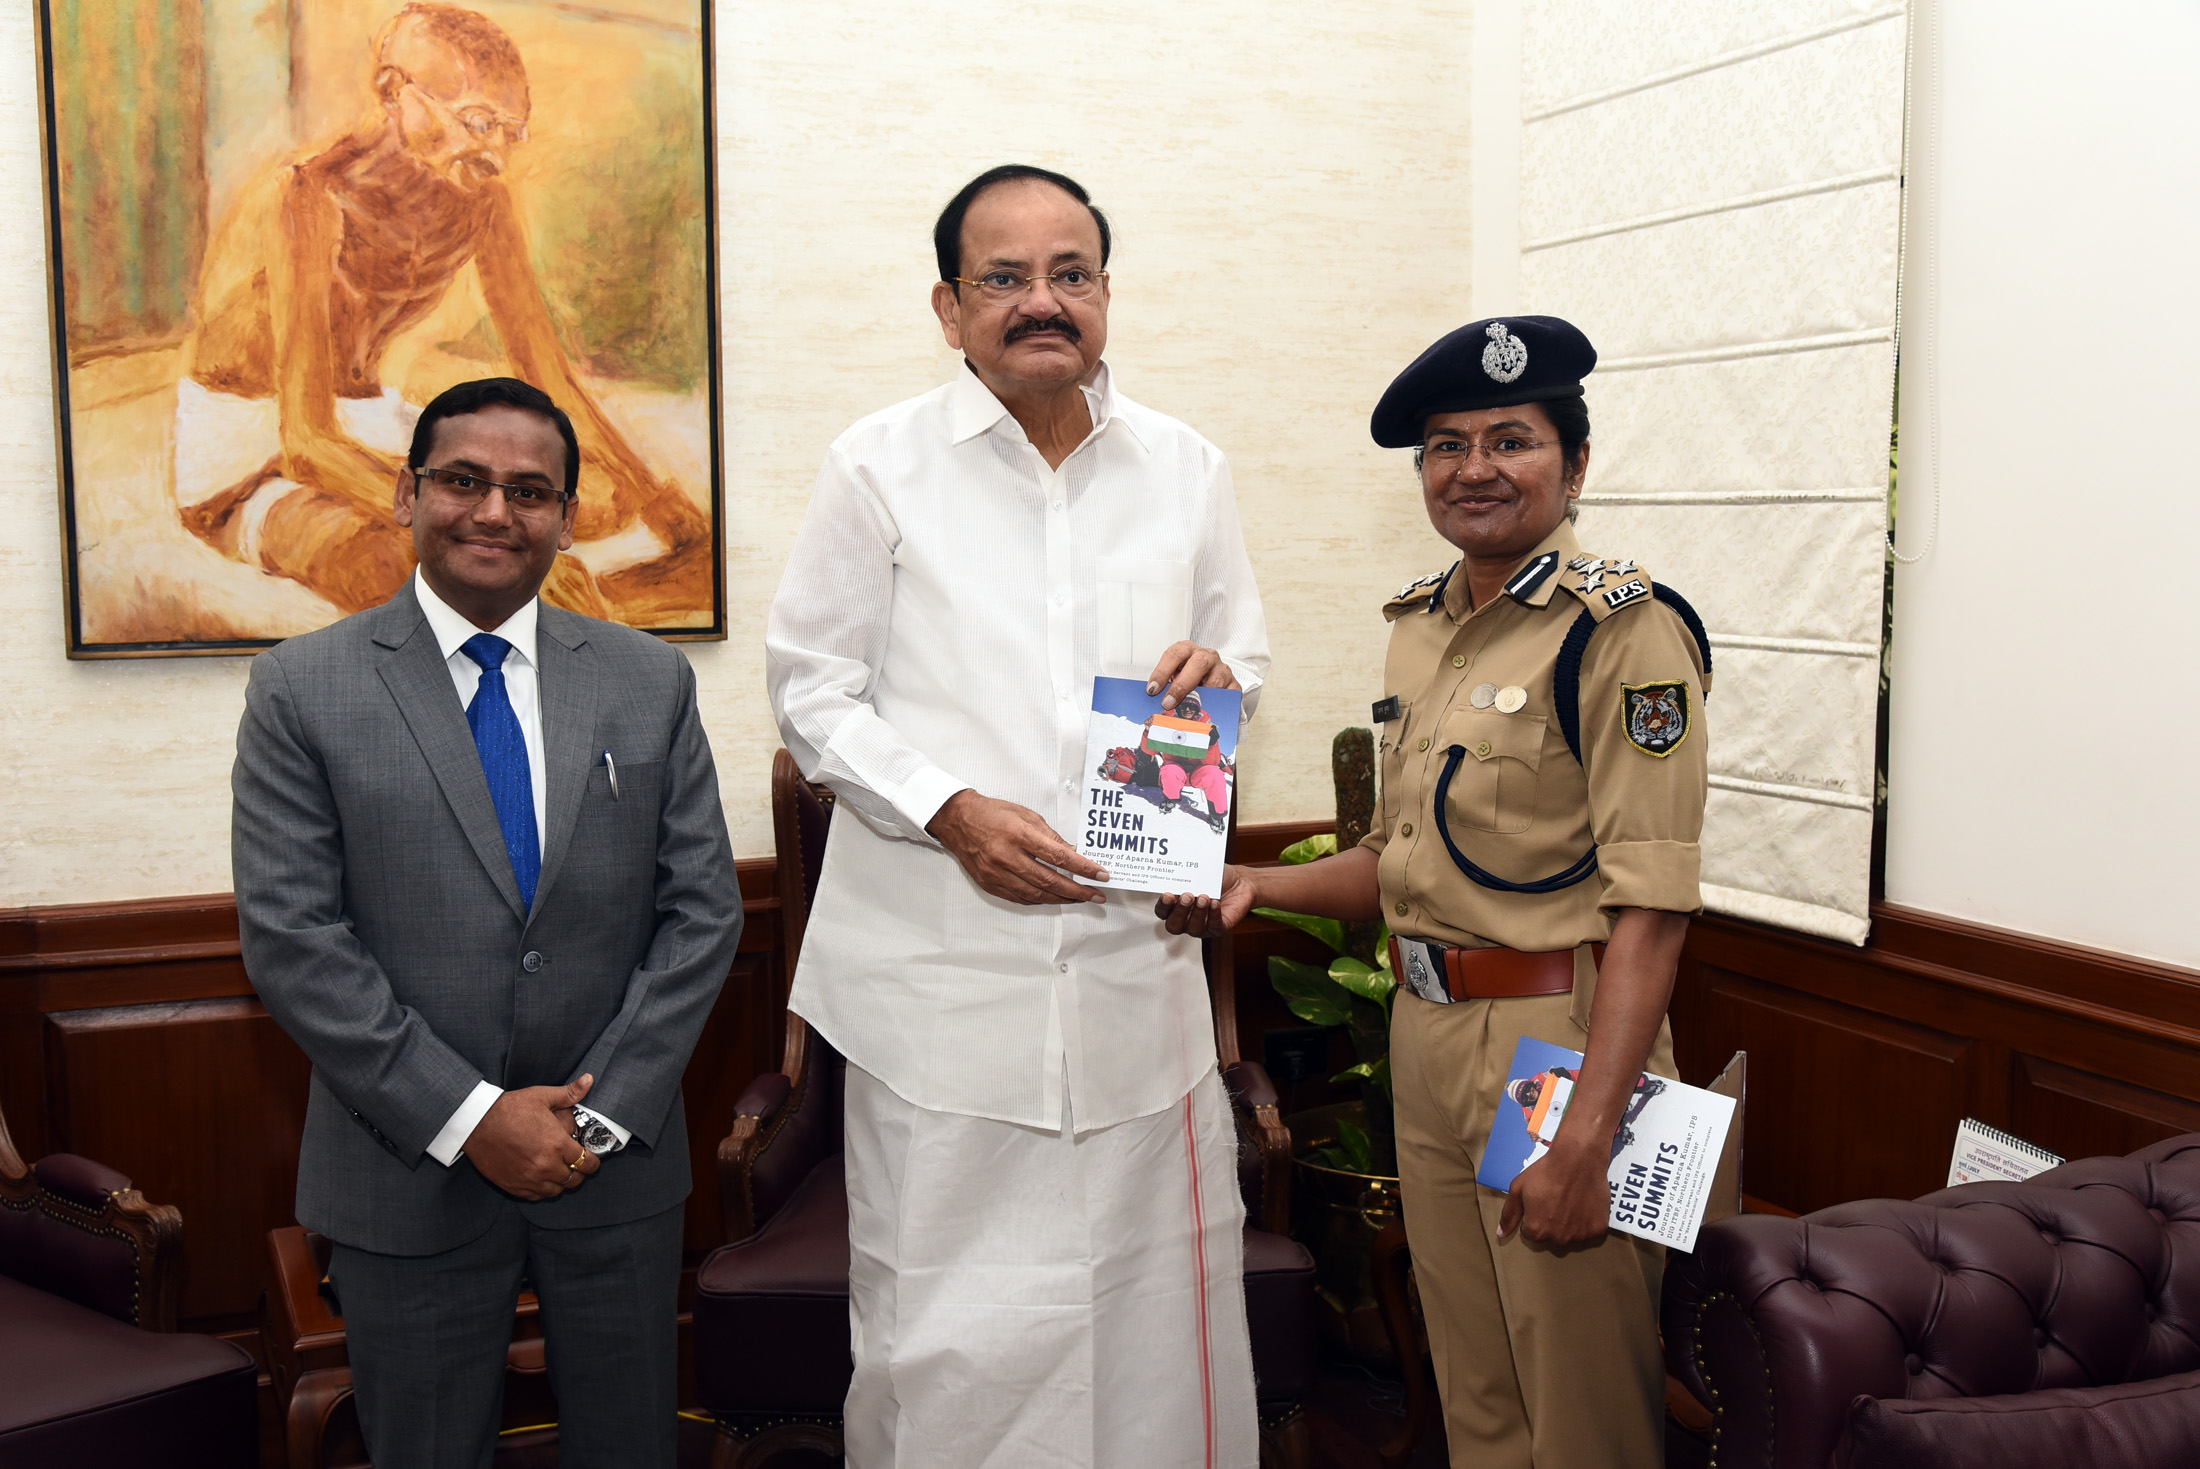 The first ever IPS officer & the fourth ever woman in the history of Indian Mountaineering to complete the 'Seven Summits Challenge', Smt. Aparna Kumar calling on the Vice President, Shri M. Venkaiah Naidu, in New Delhi on July 16, 2019.